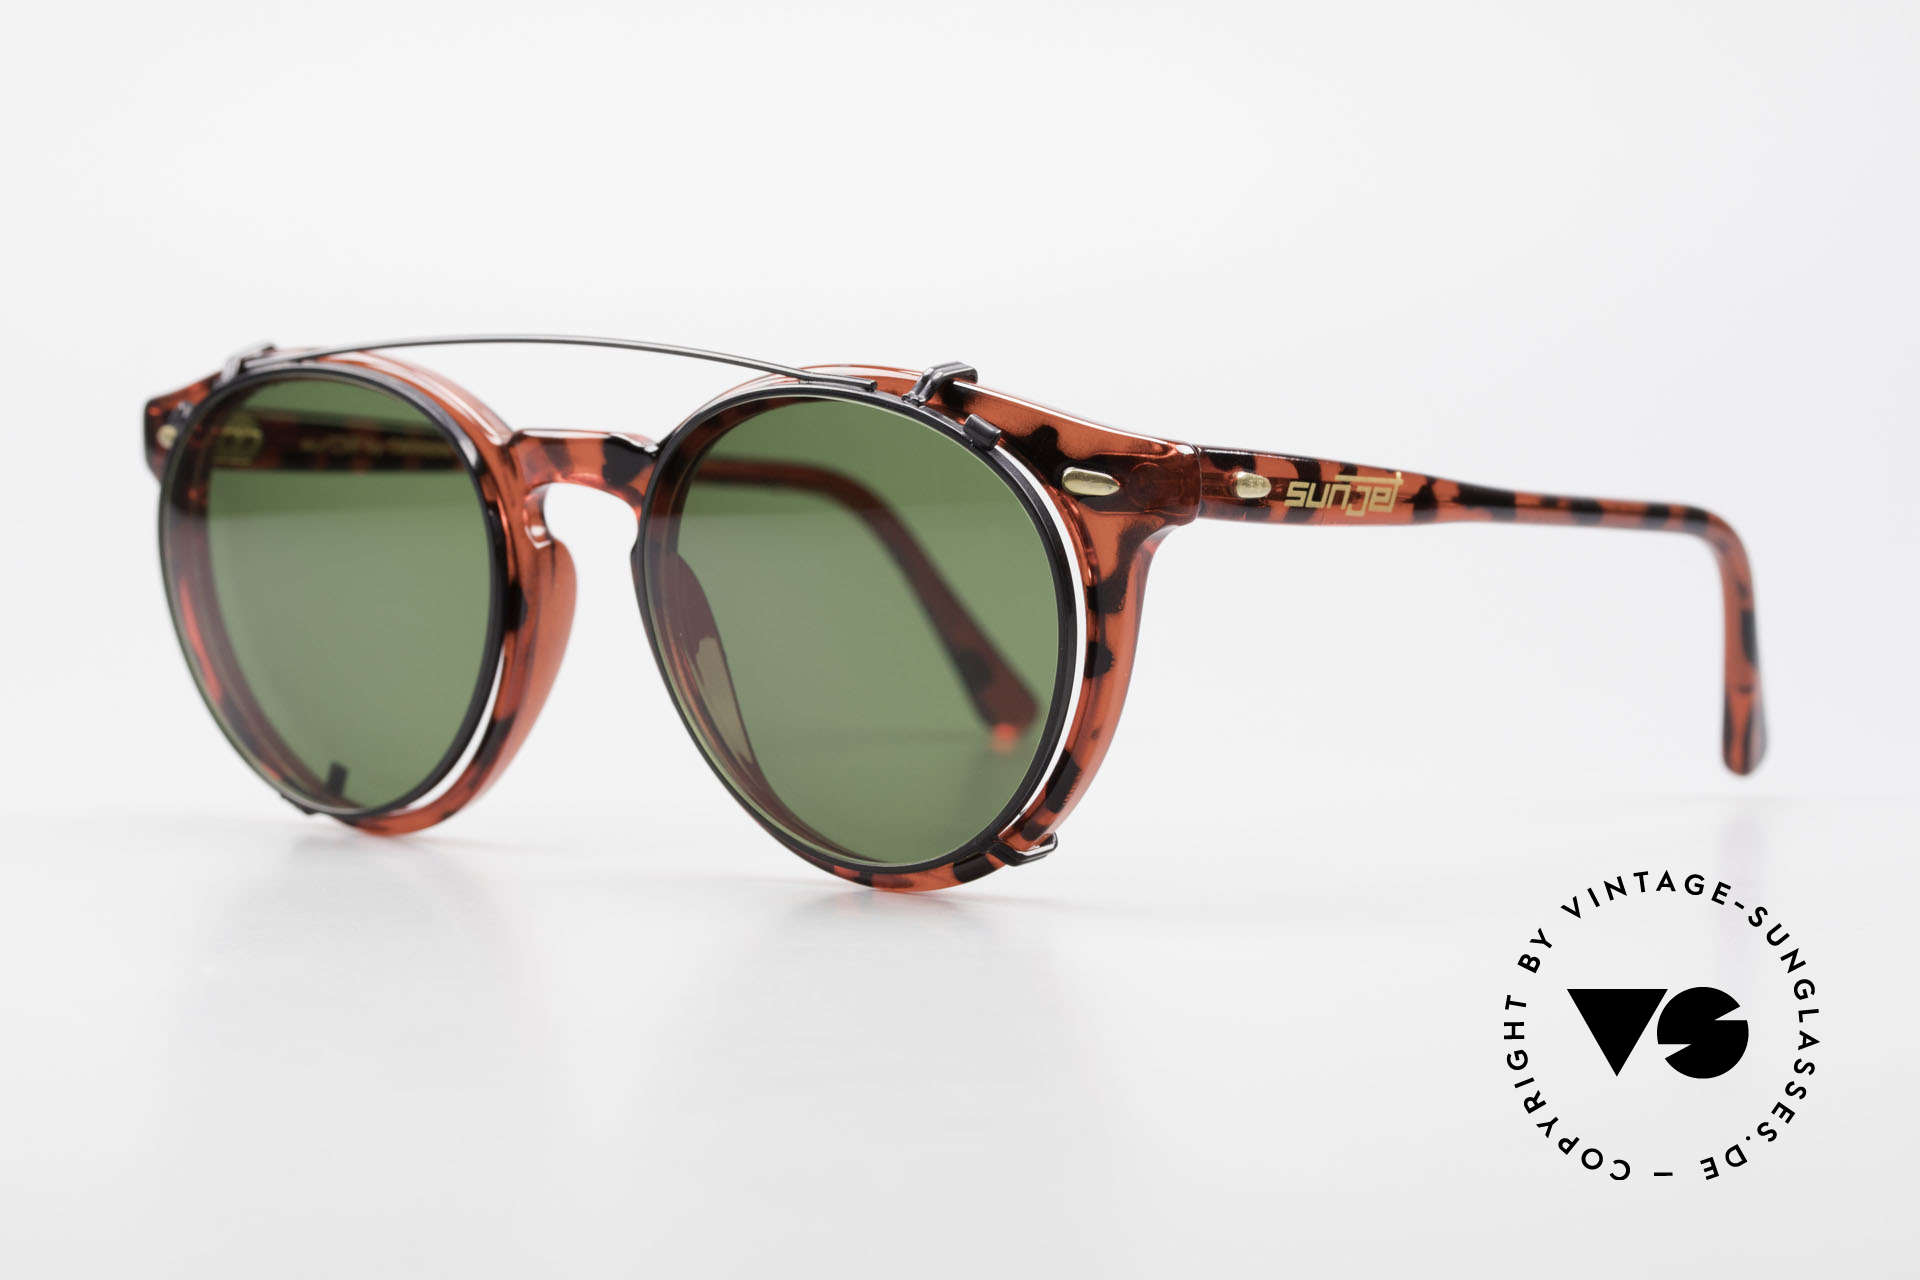 Carrera 5256 Clip Vintage Panto Frame Clip On, inspired by the old 60's 'Tart Optical Arnel' frames, Made for Men and Women